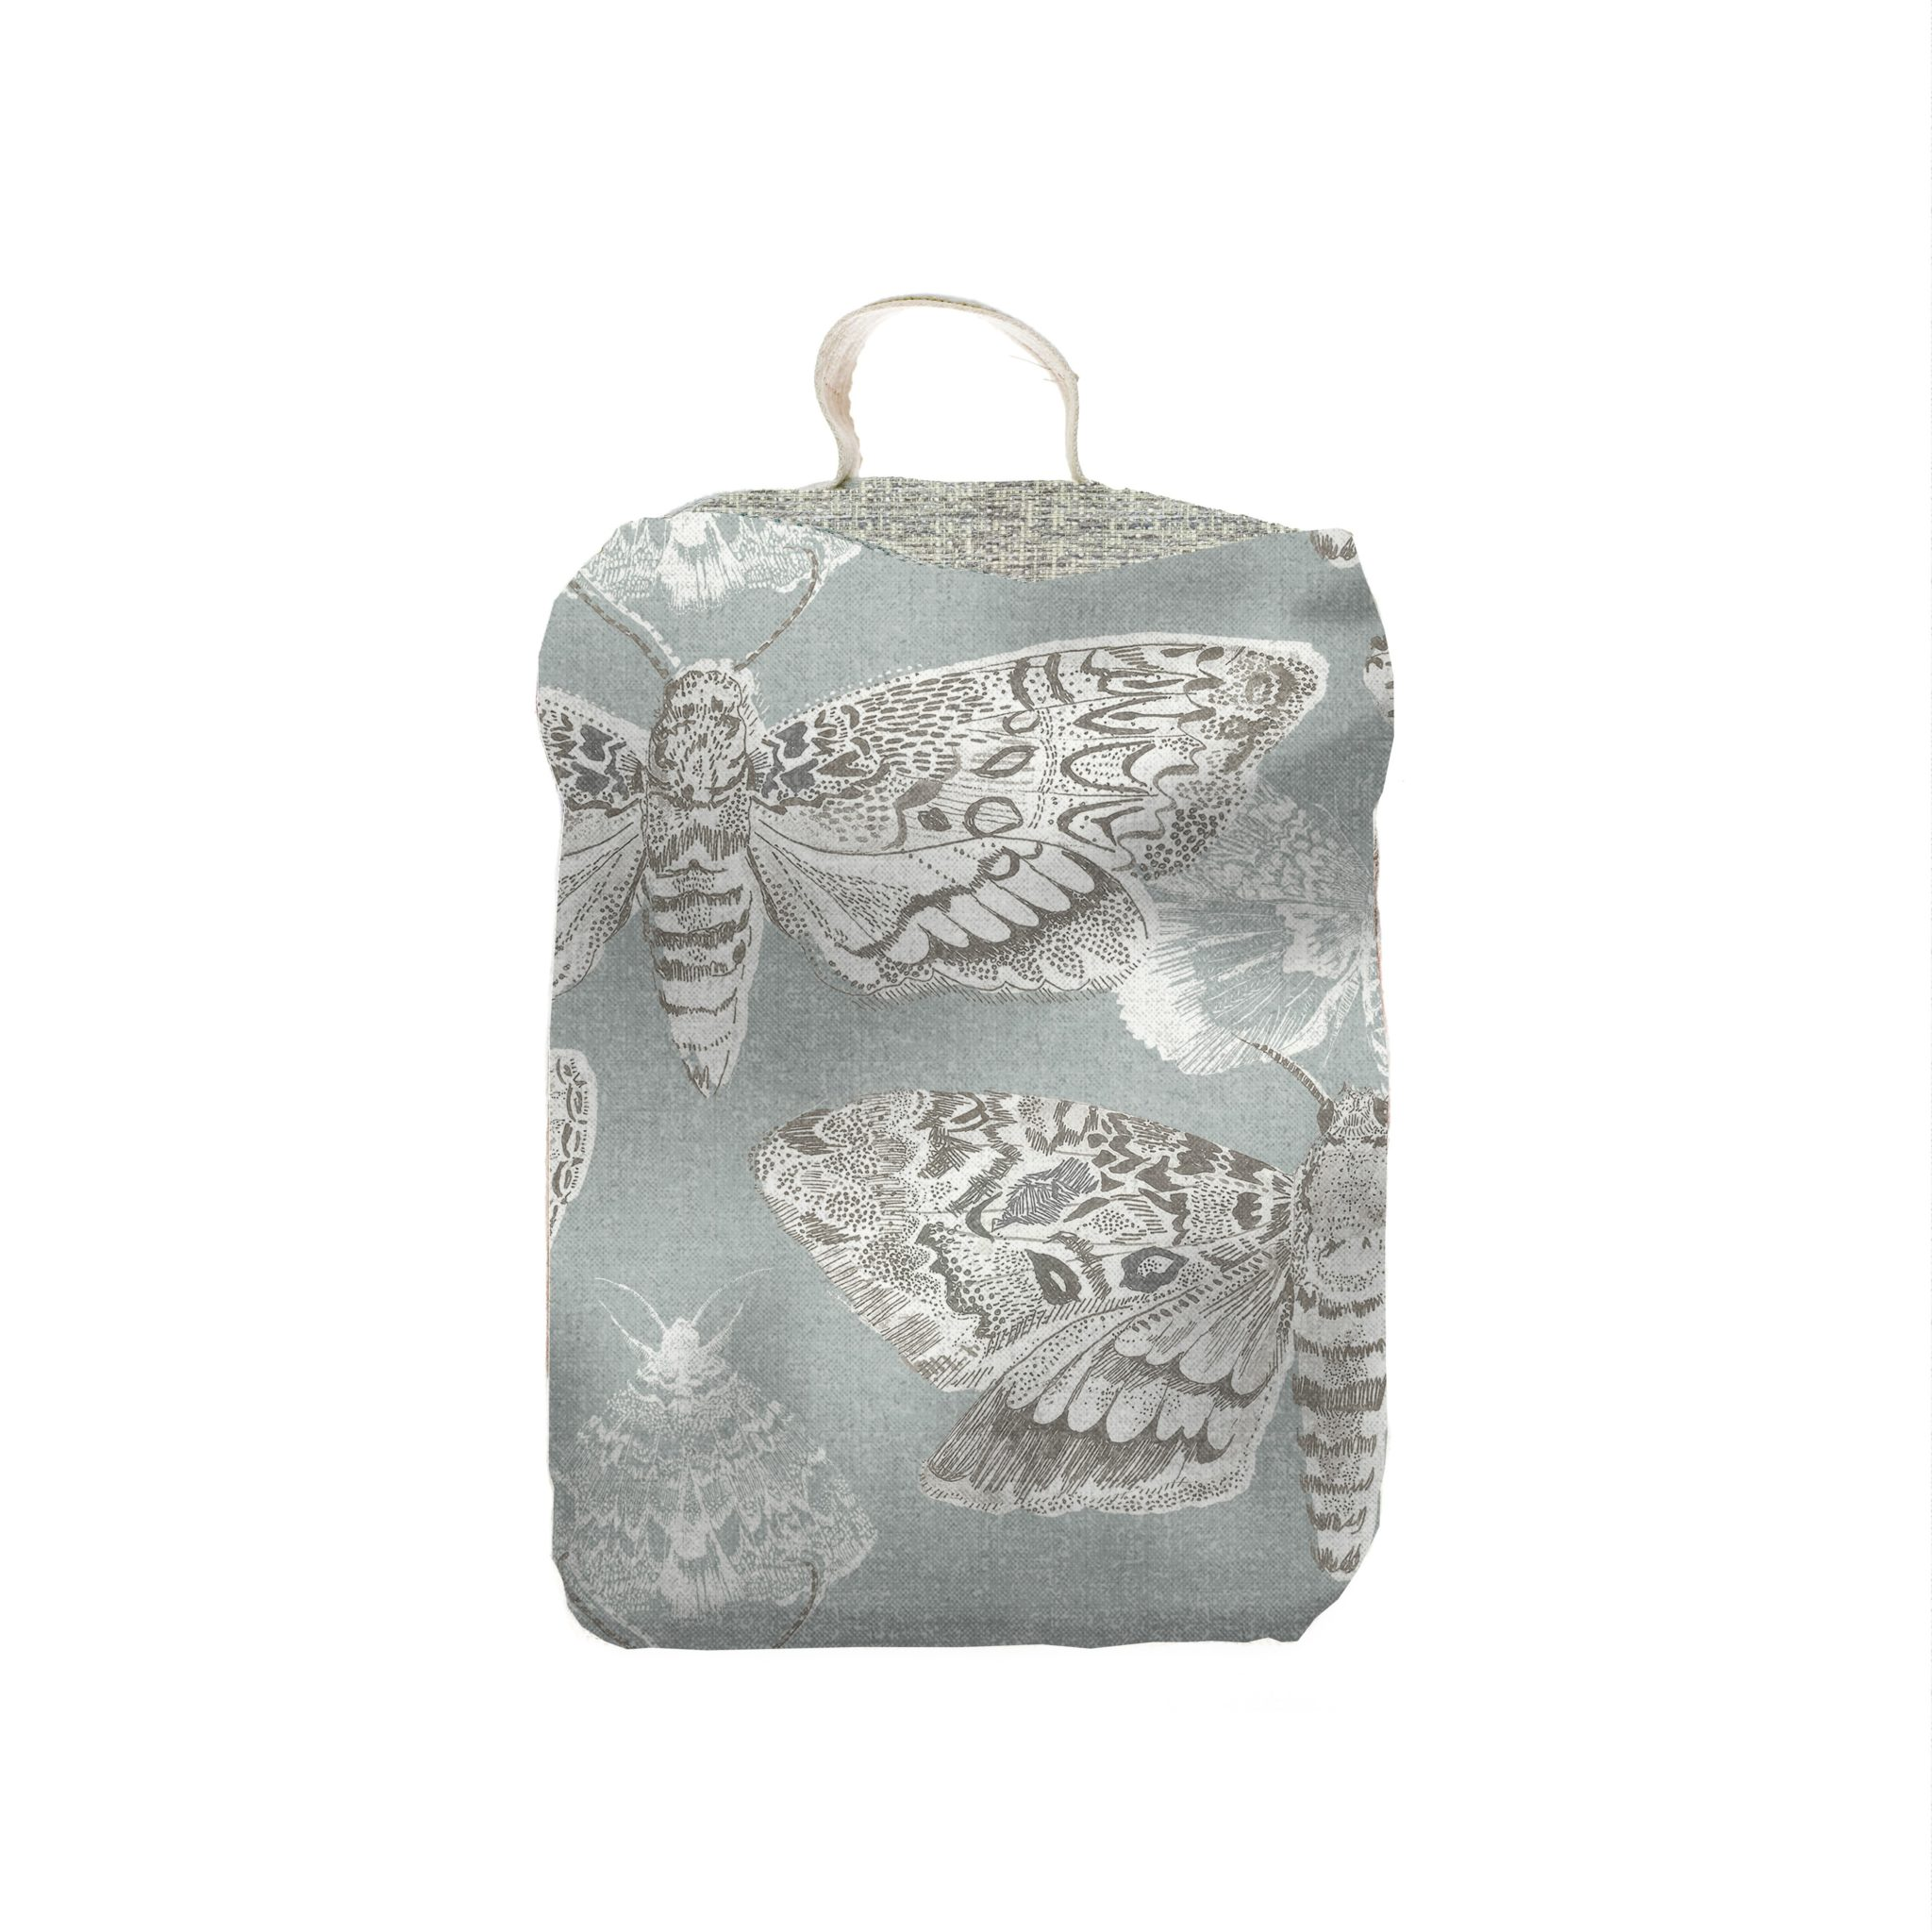 Voyage Maison Doorstop - Nocturnal. moths printed on linen background, handy handle attached. square in shape